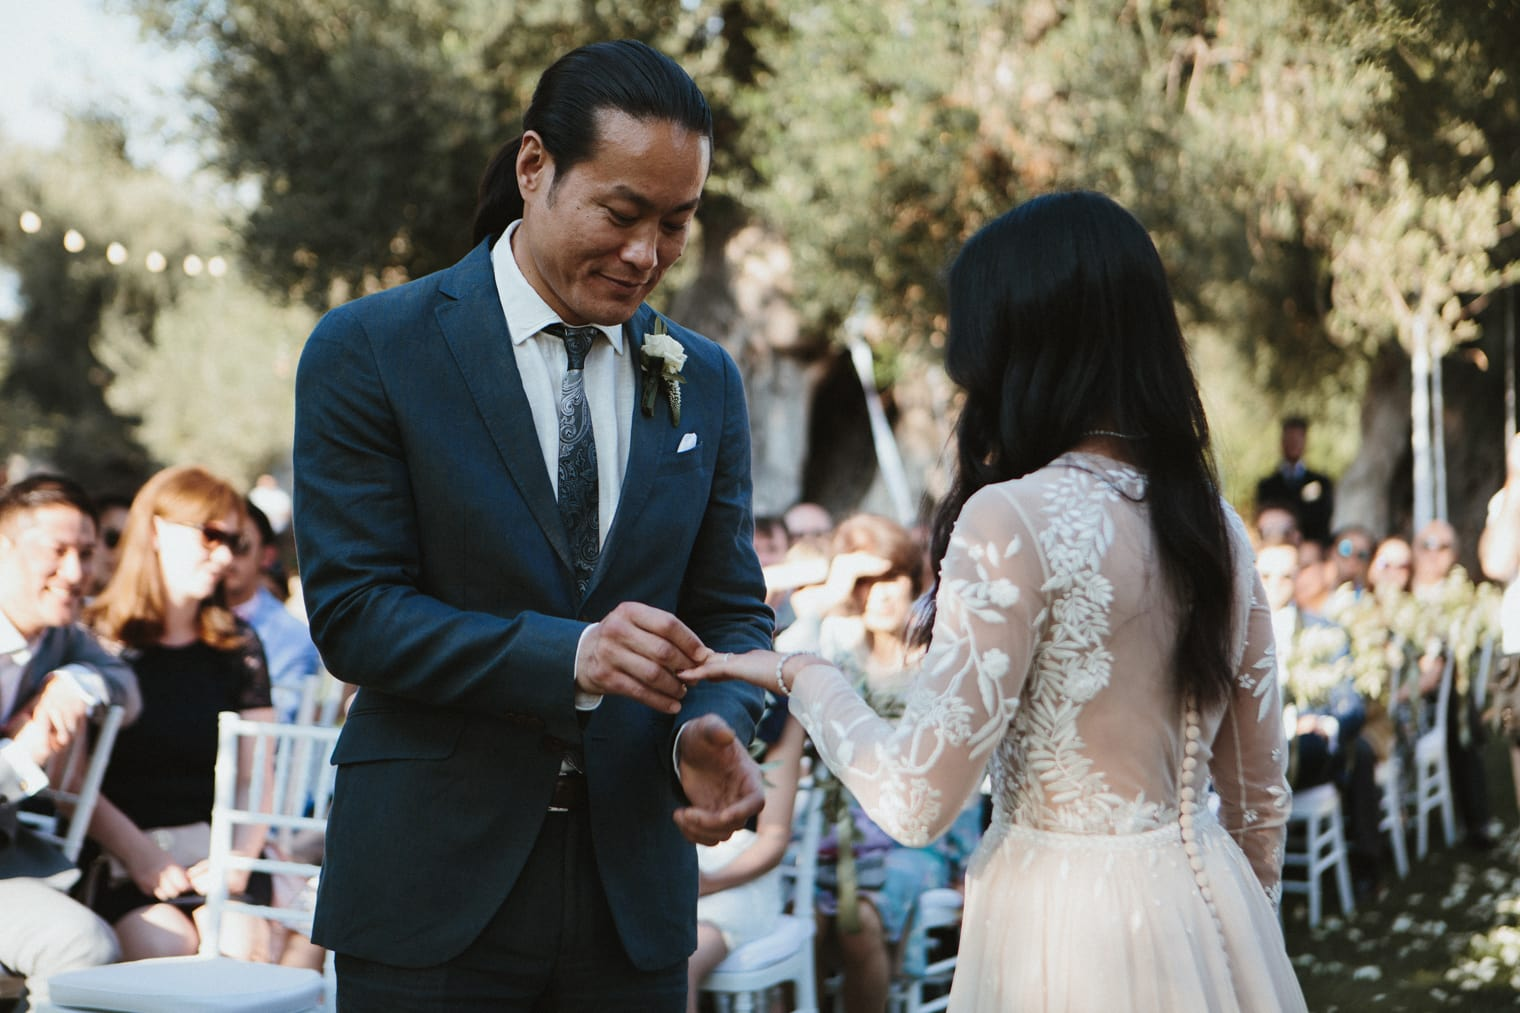 Bride and Groom exchanging rings at italian wedding ceremony at masseria torre coccaro